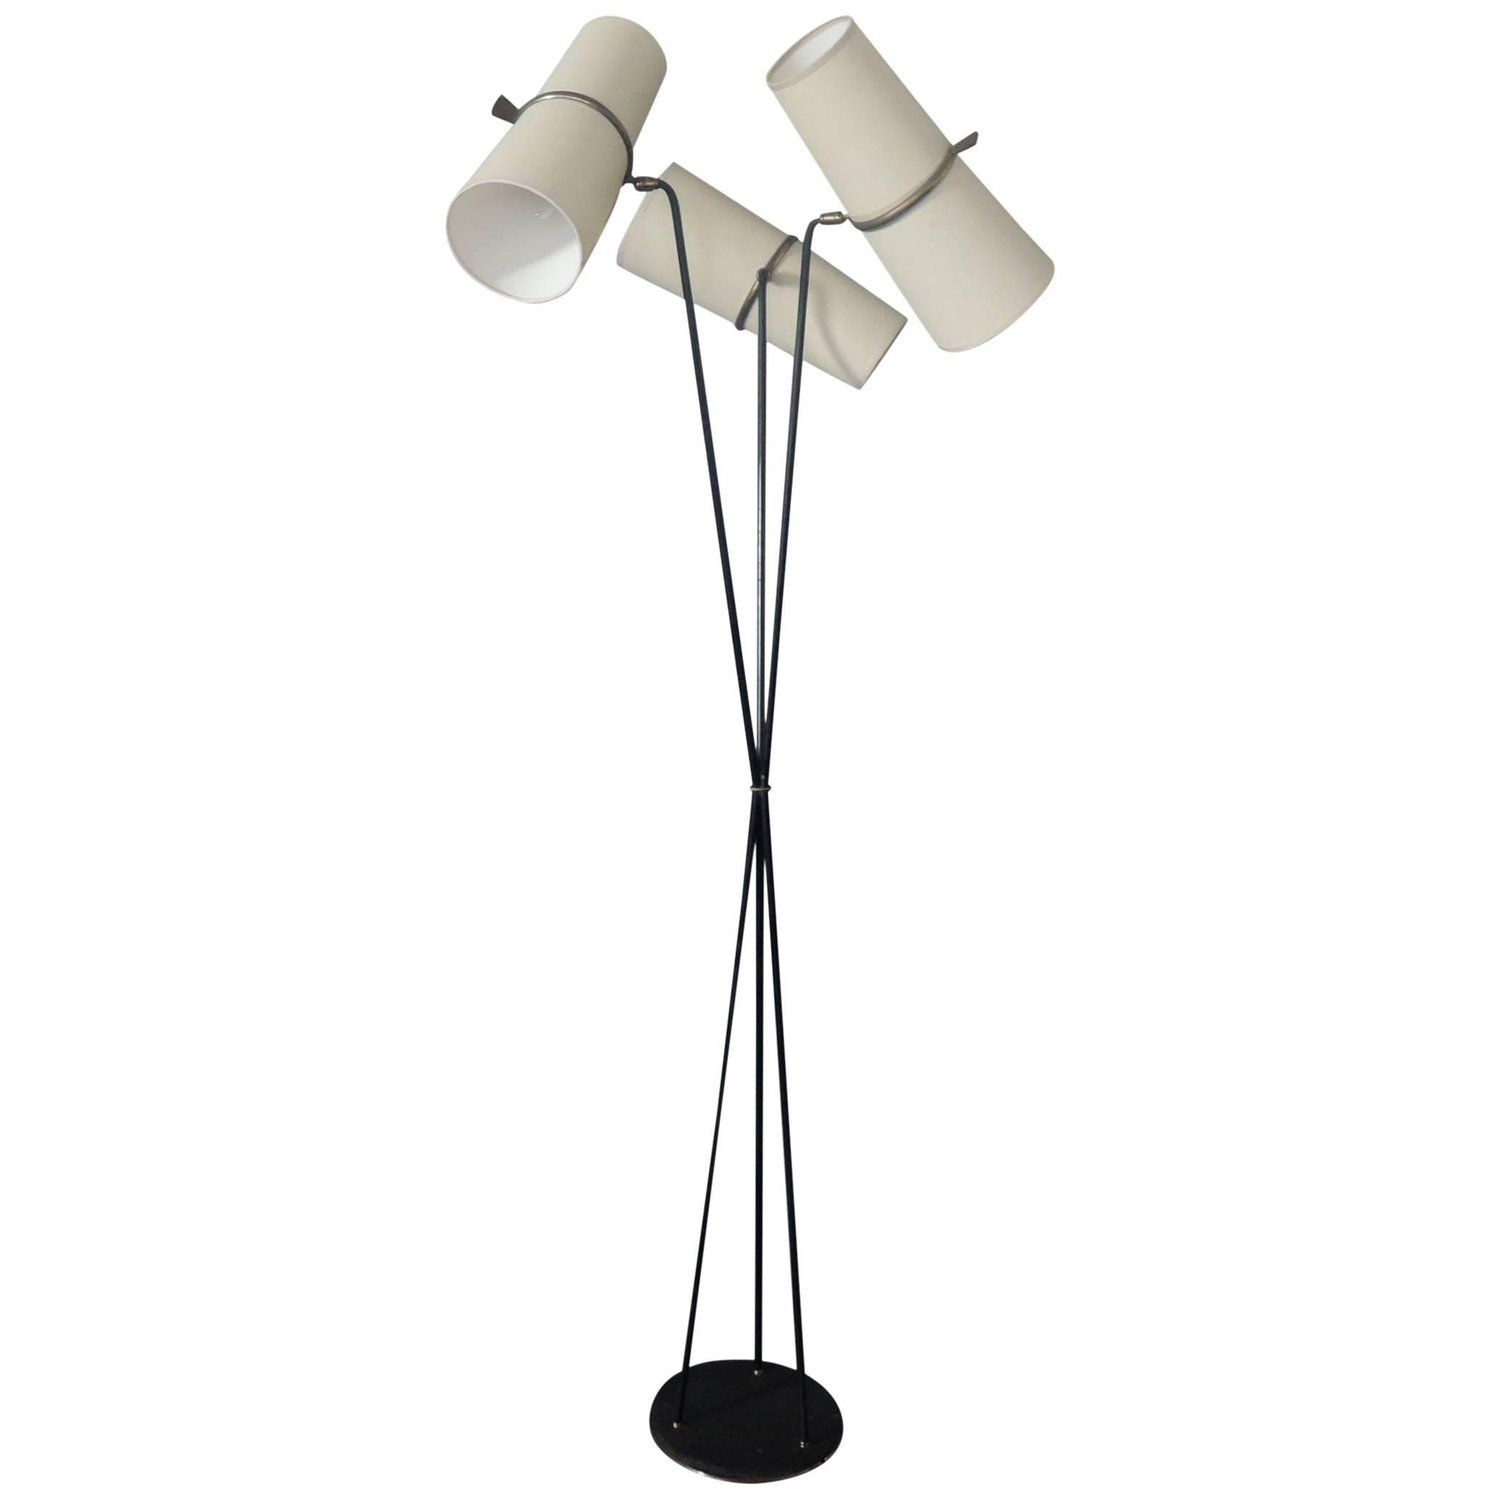 Fine French 1950s Three Stem Floor Lamp By Maison Lunel Floor Lamp Lamp Lunel